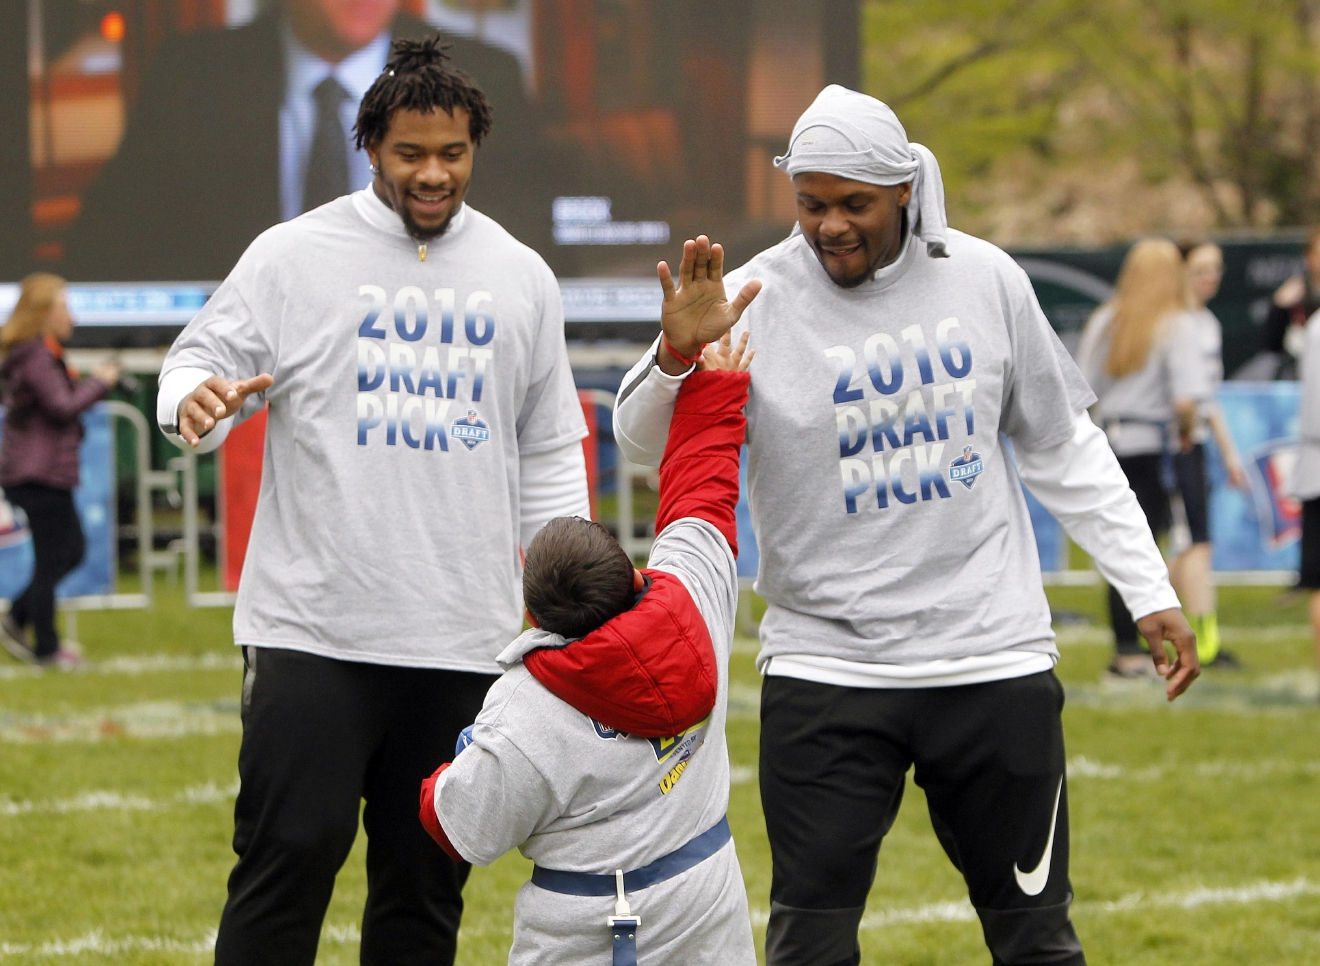 Mississippi's Robert Nkemdiche, left, and Alabama's Reggie Ragland gives high fives during an NFL Play 60 event at Grant Park, Wednesday, April 27, 2016, in Chicago before Thursday's first round of the NFL football draft. (AP Photo/Kiichiro Sato)